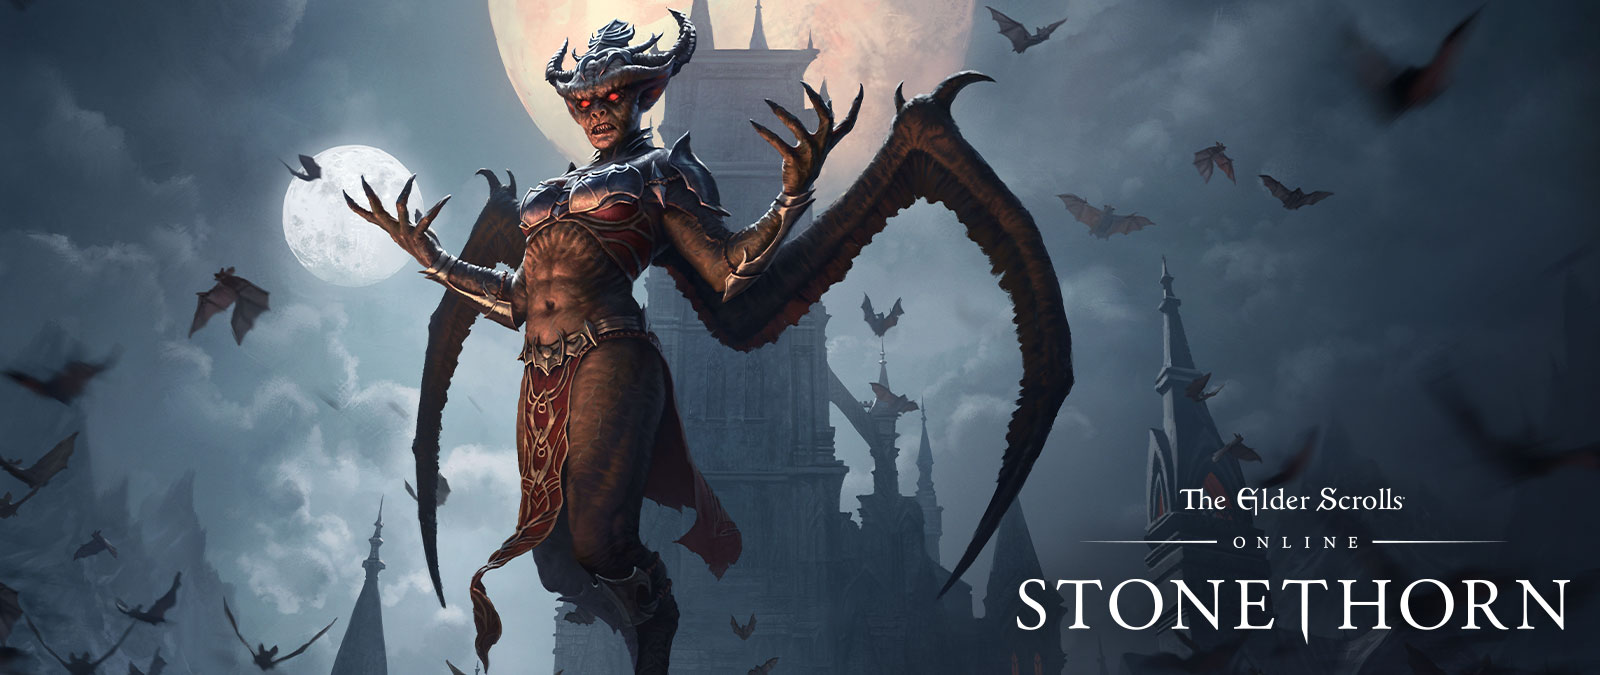 The Elder Scrolls Online Stonethorn, A vampire surrounded by bats flies at night in front of a large tower